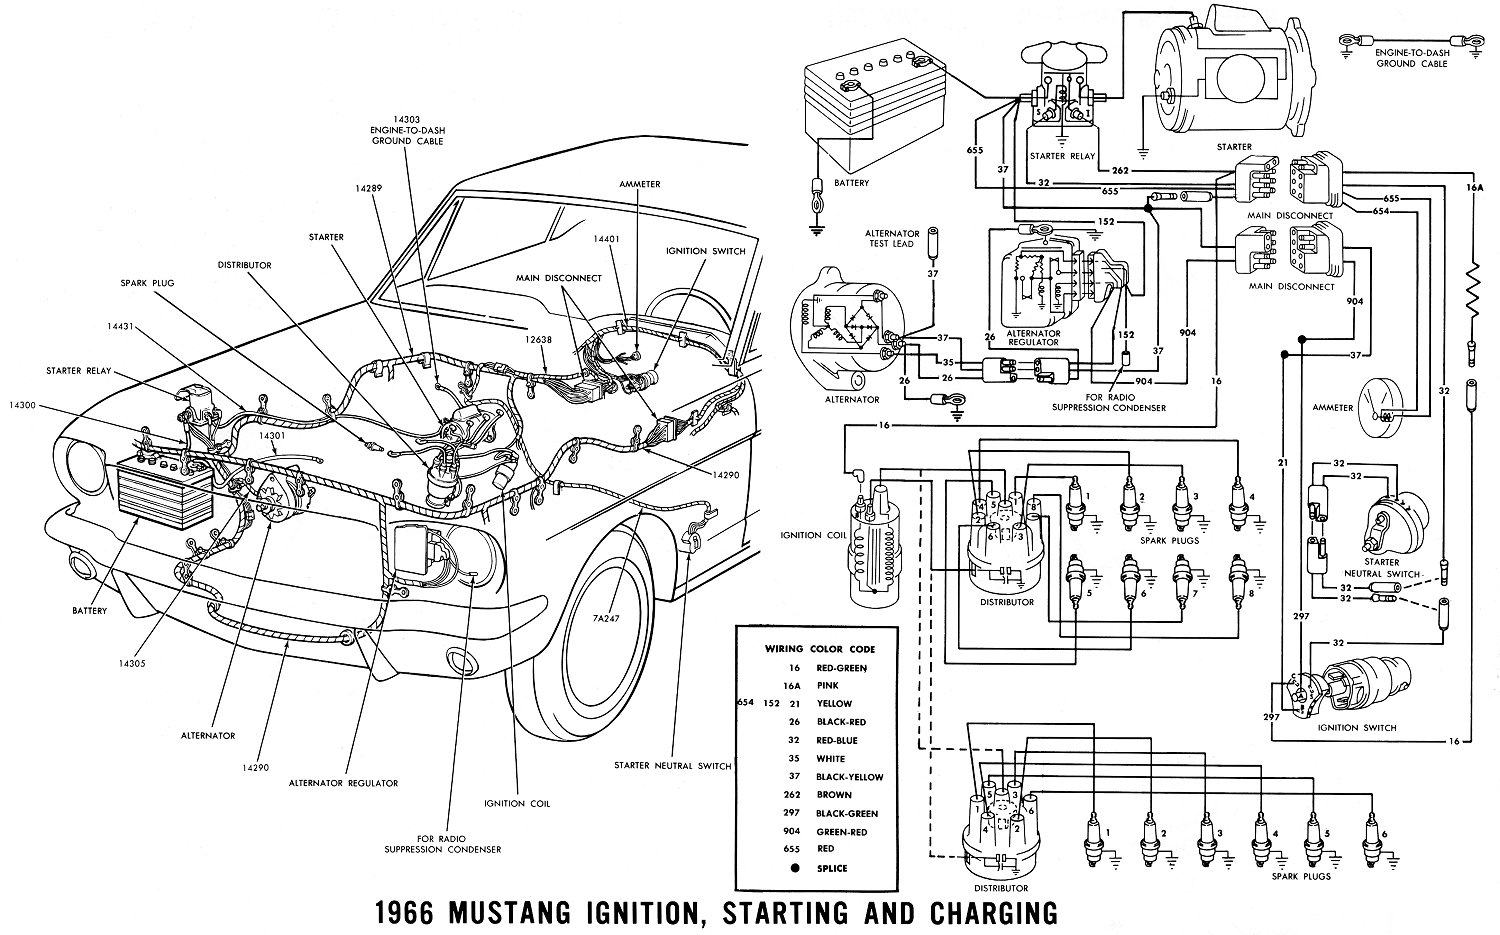 66 ford pickup wiring diagram pdf with Another Led Taillight Question on Index2 likewise Wiring likewise Exploded View For The 1993 Chevrolet Pickup Tilt as well 1126890 65 Ford F100 Wiring Diagrams additionally 75 Cj5 Wiring Harness Replacement 12456.